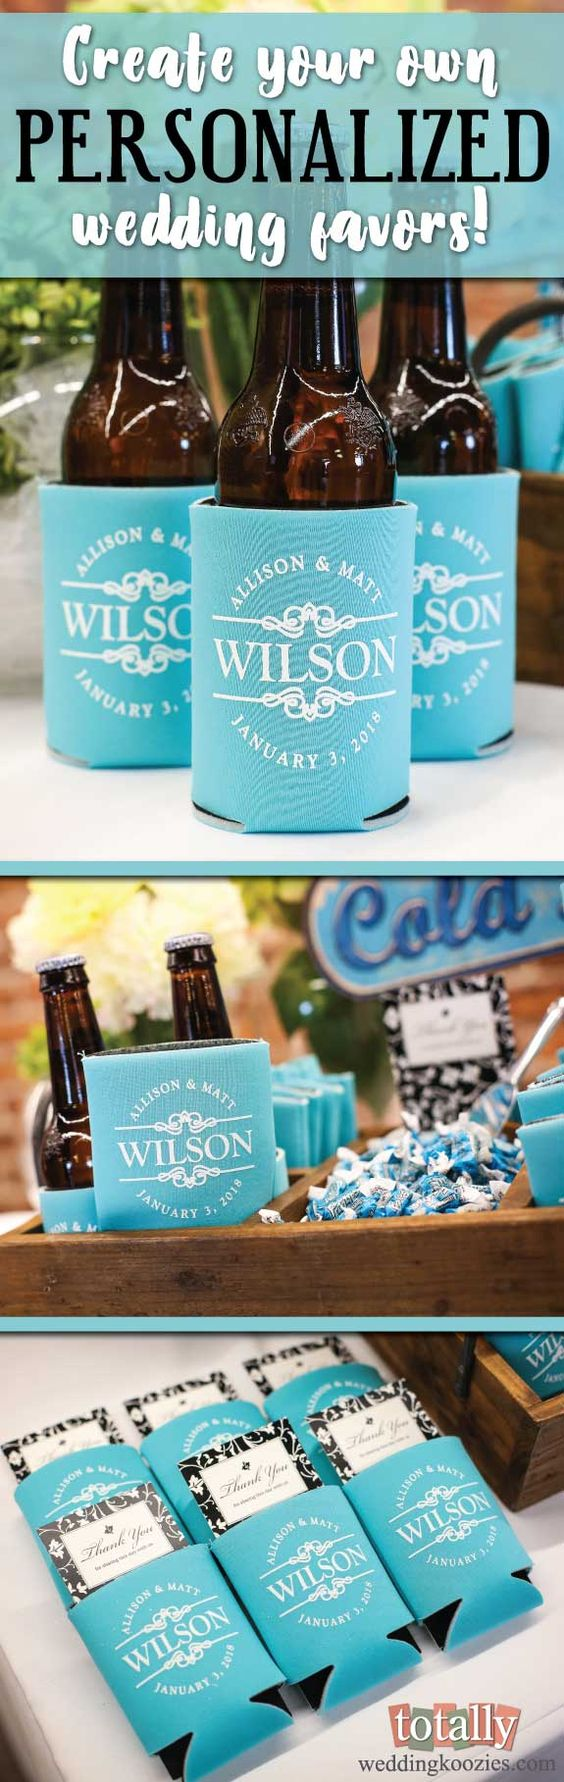 Totally wedding koozie coupon code